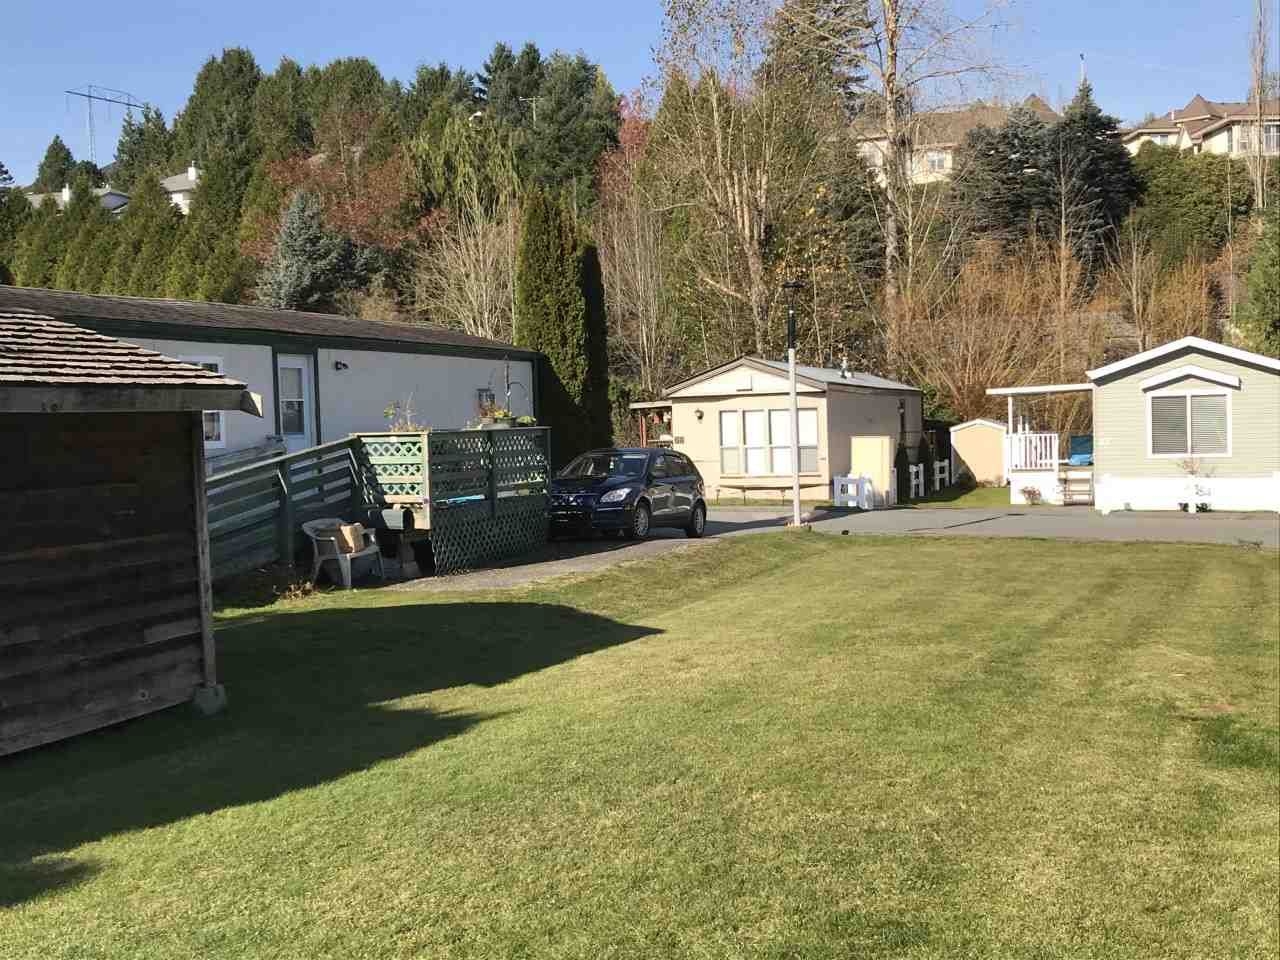 """Main Photo: 71 3300 HORN Street in Abbotsford: Central Abbotsford Manufactured Home for sale in """"Georgian Park"""" : MLS®# R2423912"""